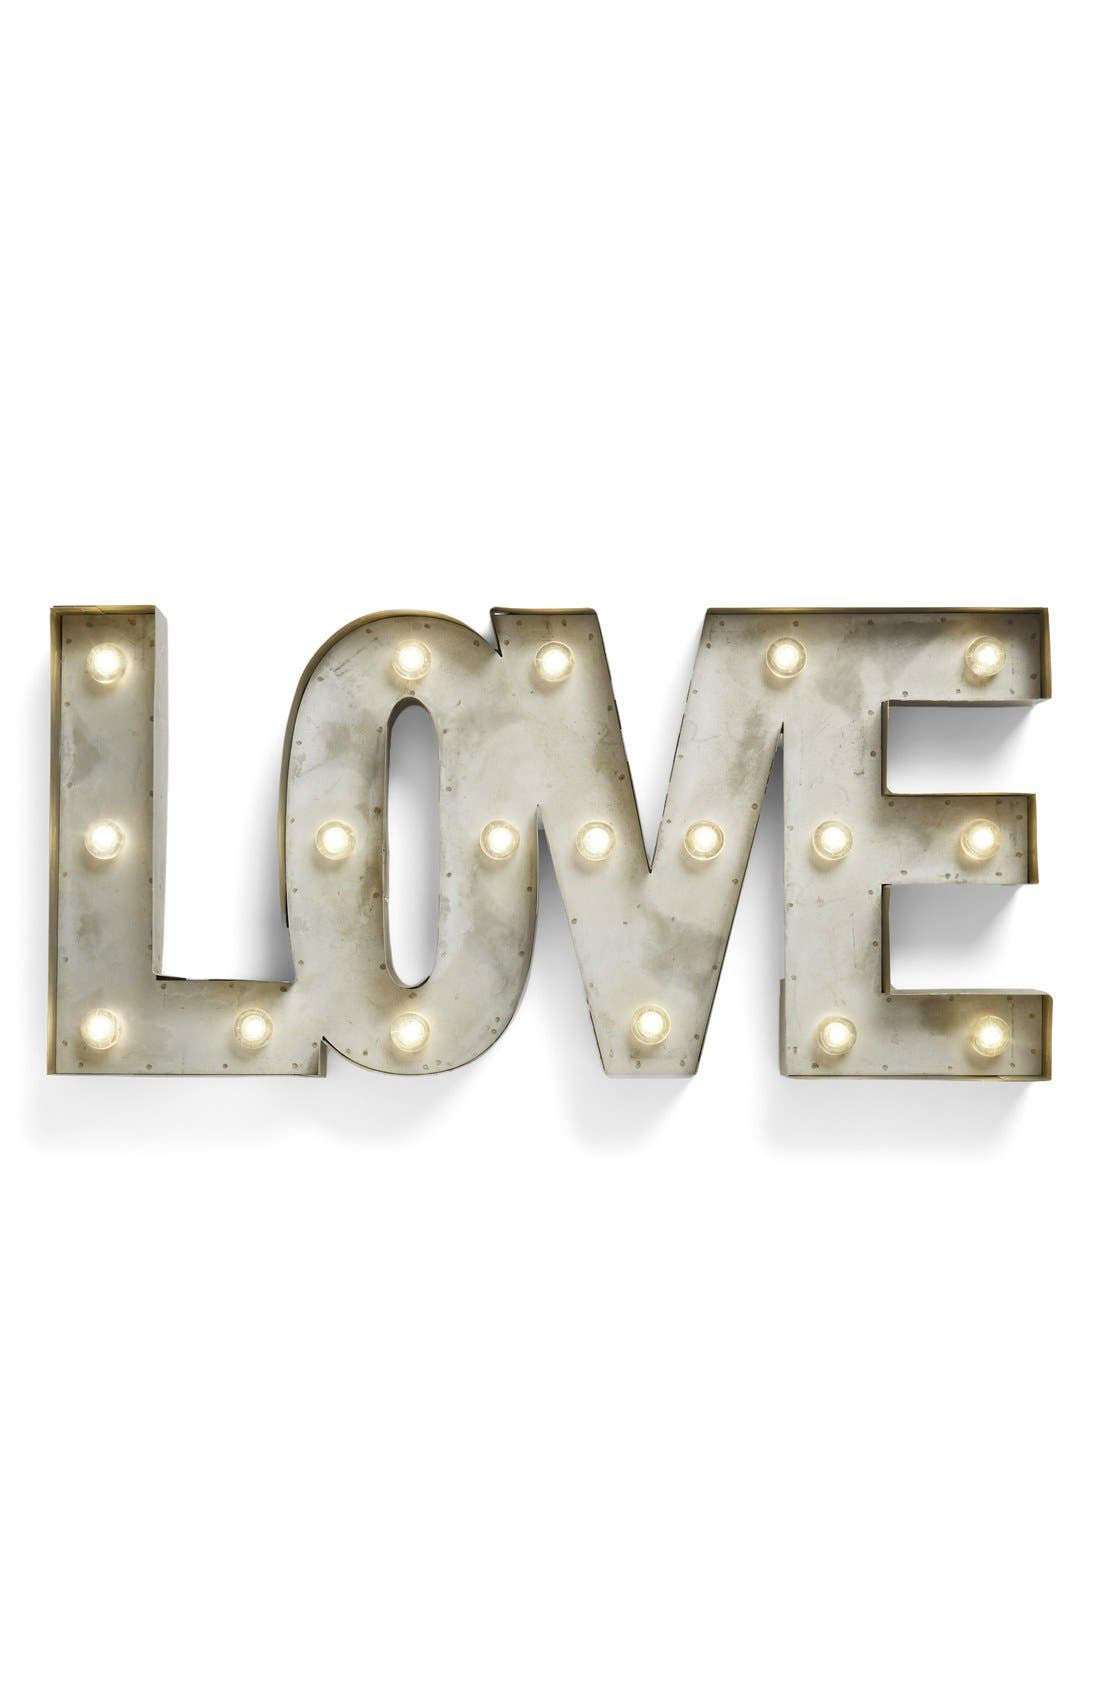 'LOVE' LED Marquee Sign,                         Main,                         color, Metal